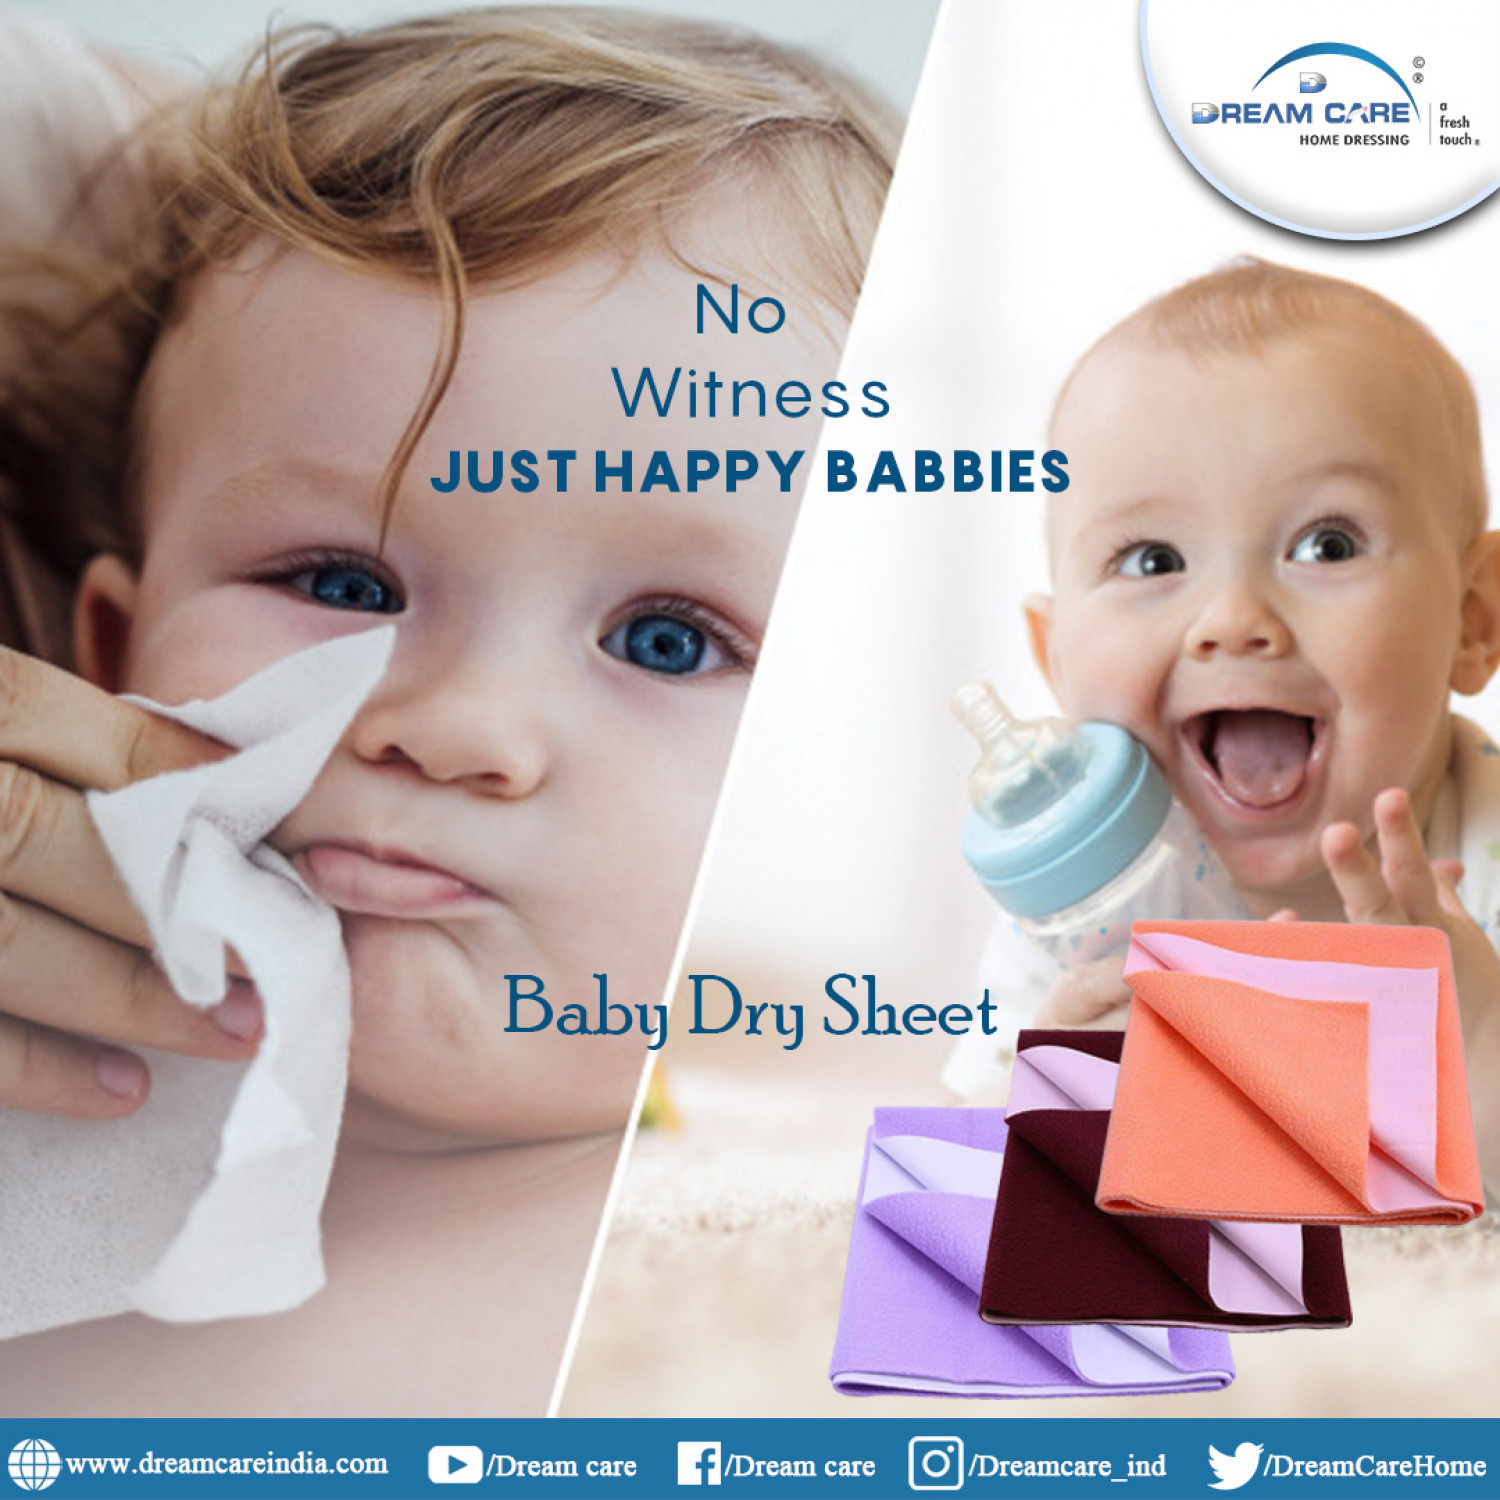 Baby dry Sheets Infographic